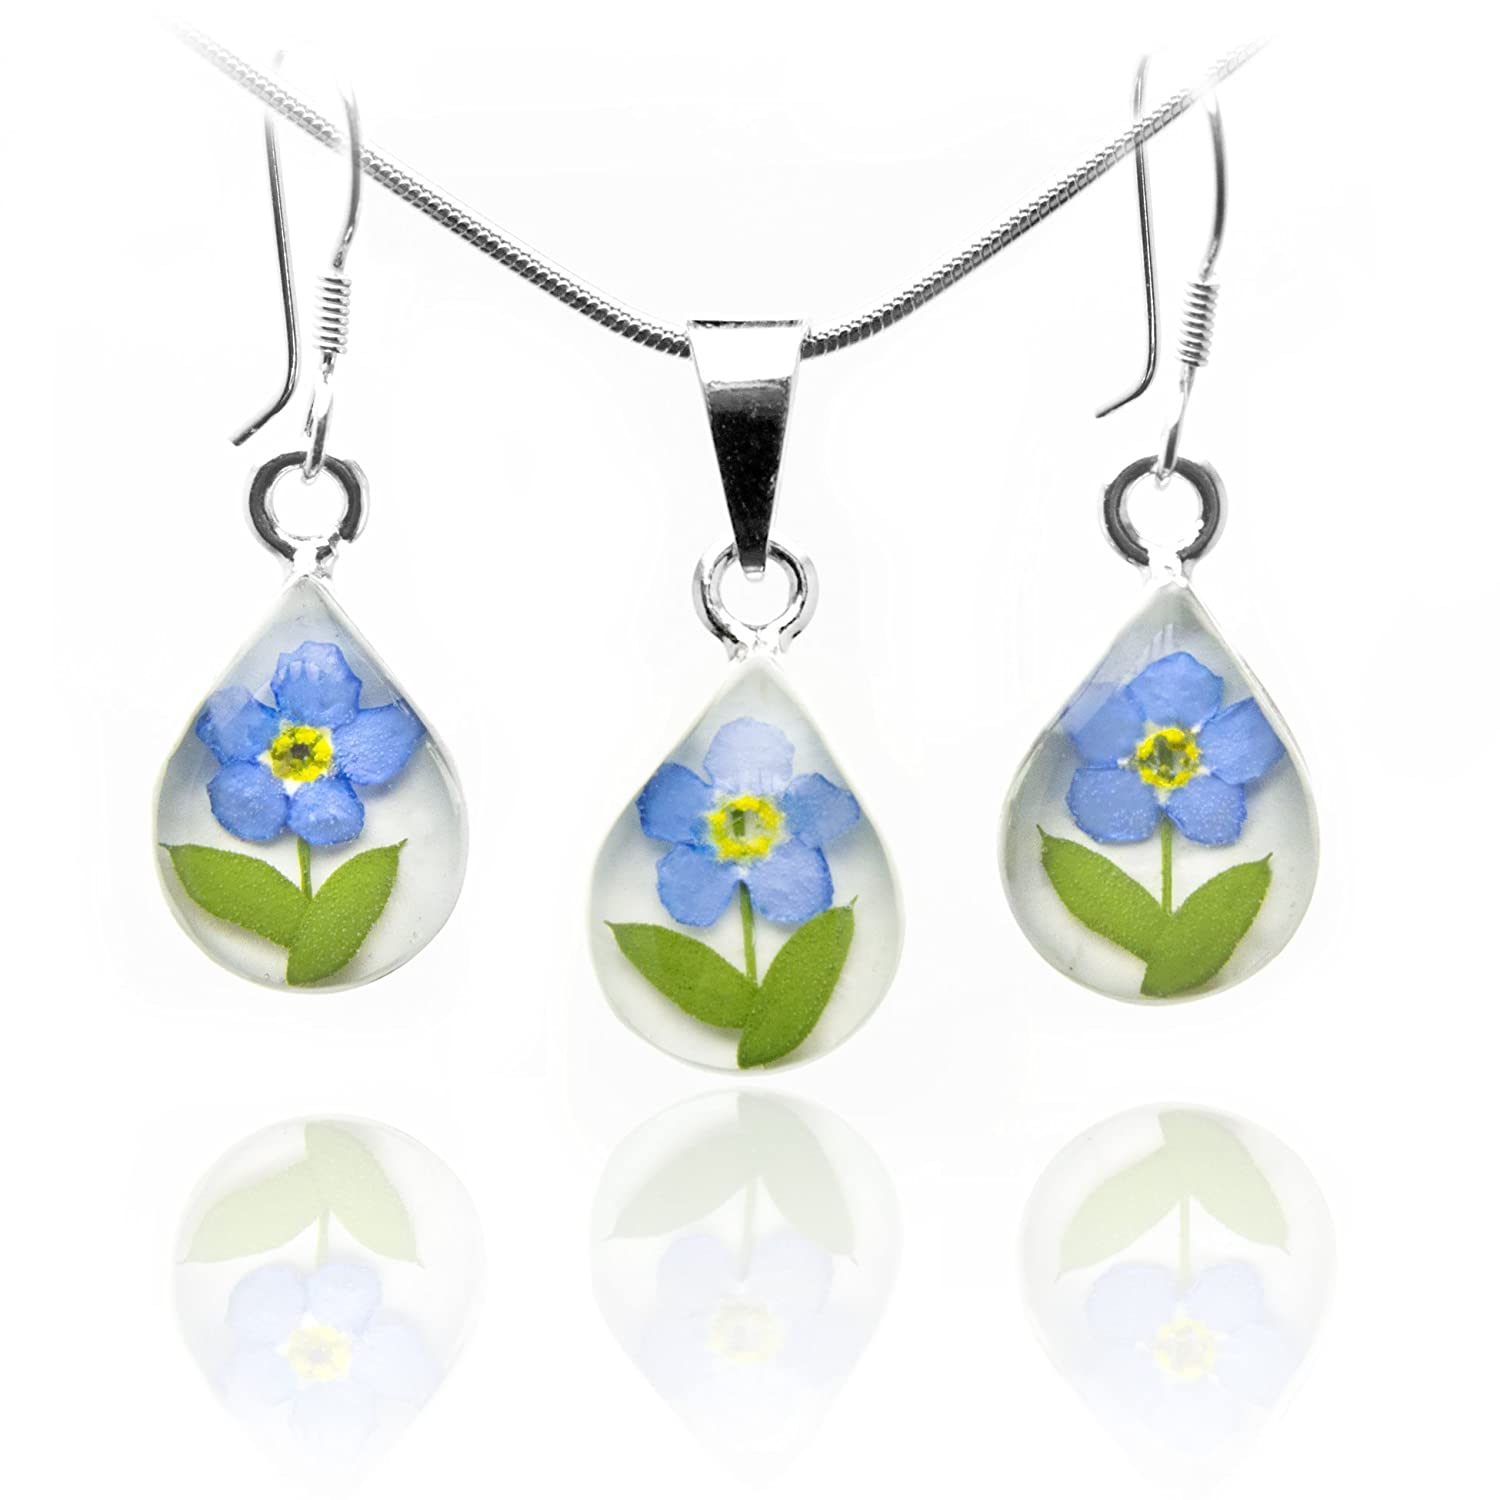 Sterling Silver Teardrop Necklace and Earrings by TAMI -Floral Jewelry- with Real Pressed Forget Me Not Flowers (Symbol of Eternal Love) in a White Background and 17.7 Mouse Tail Chain